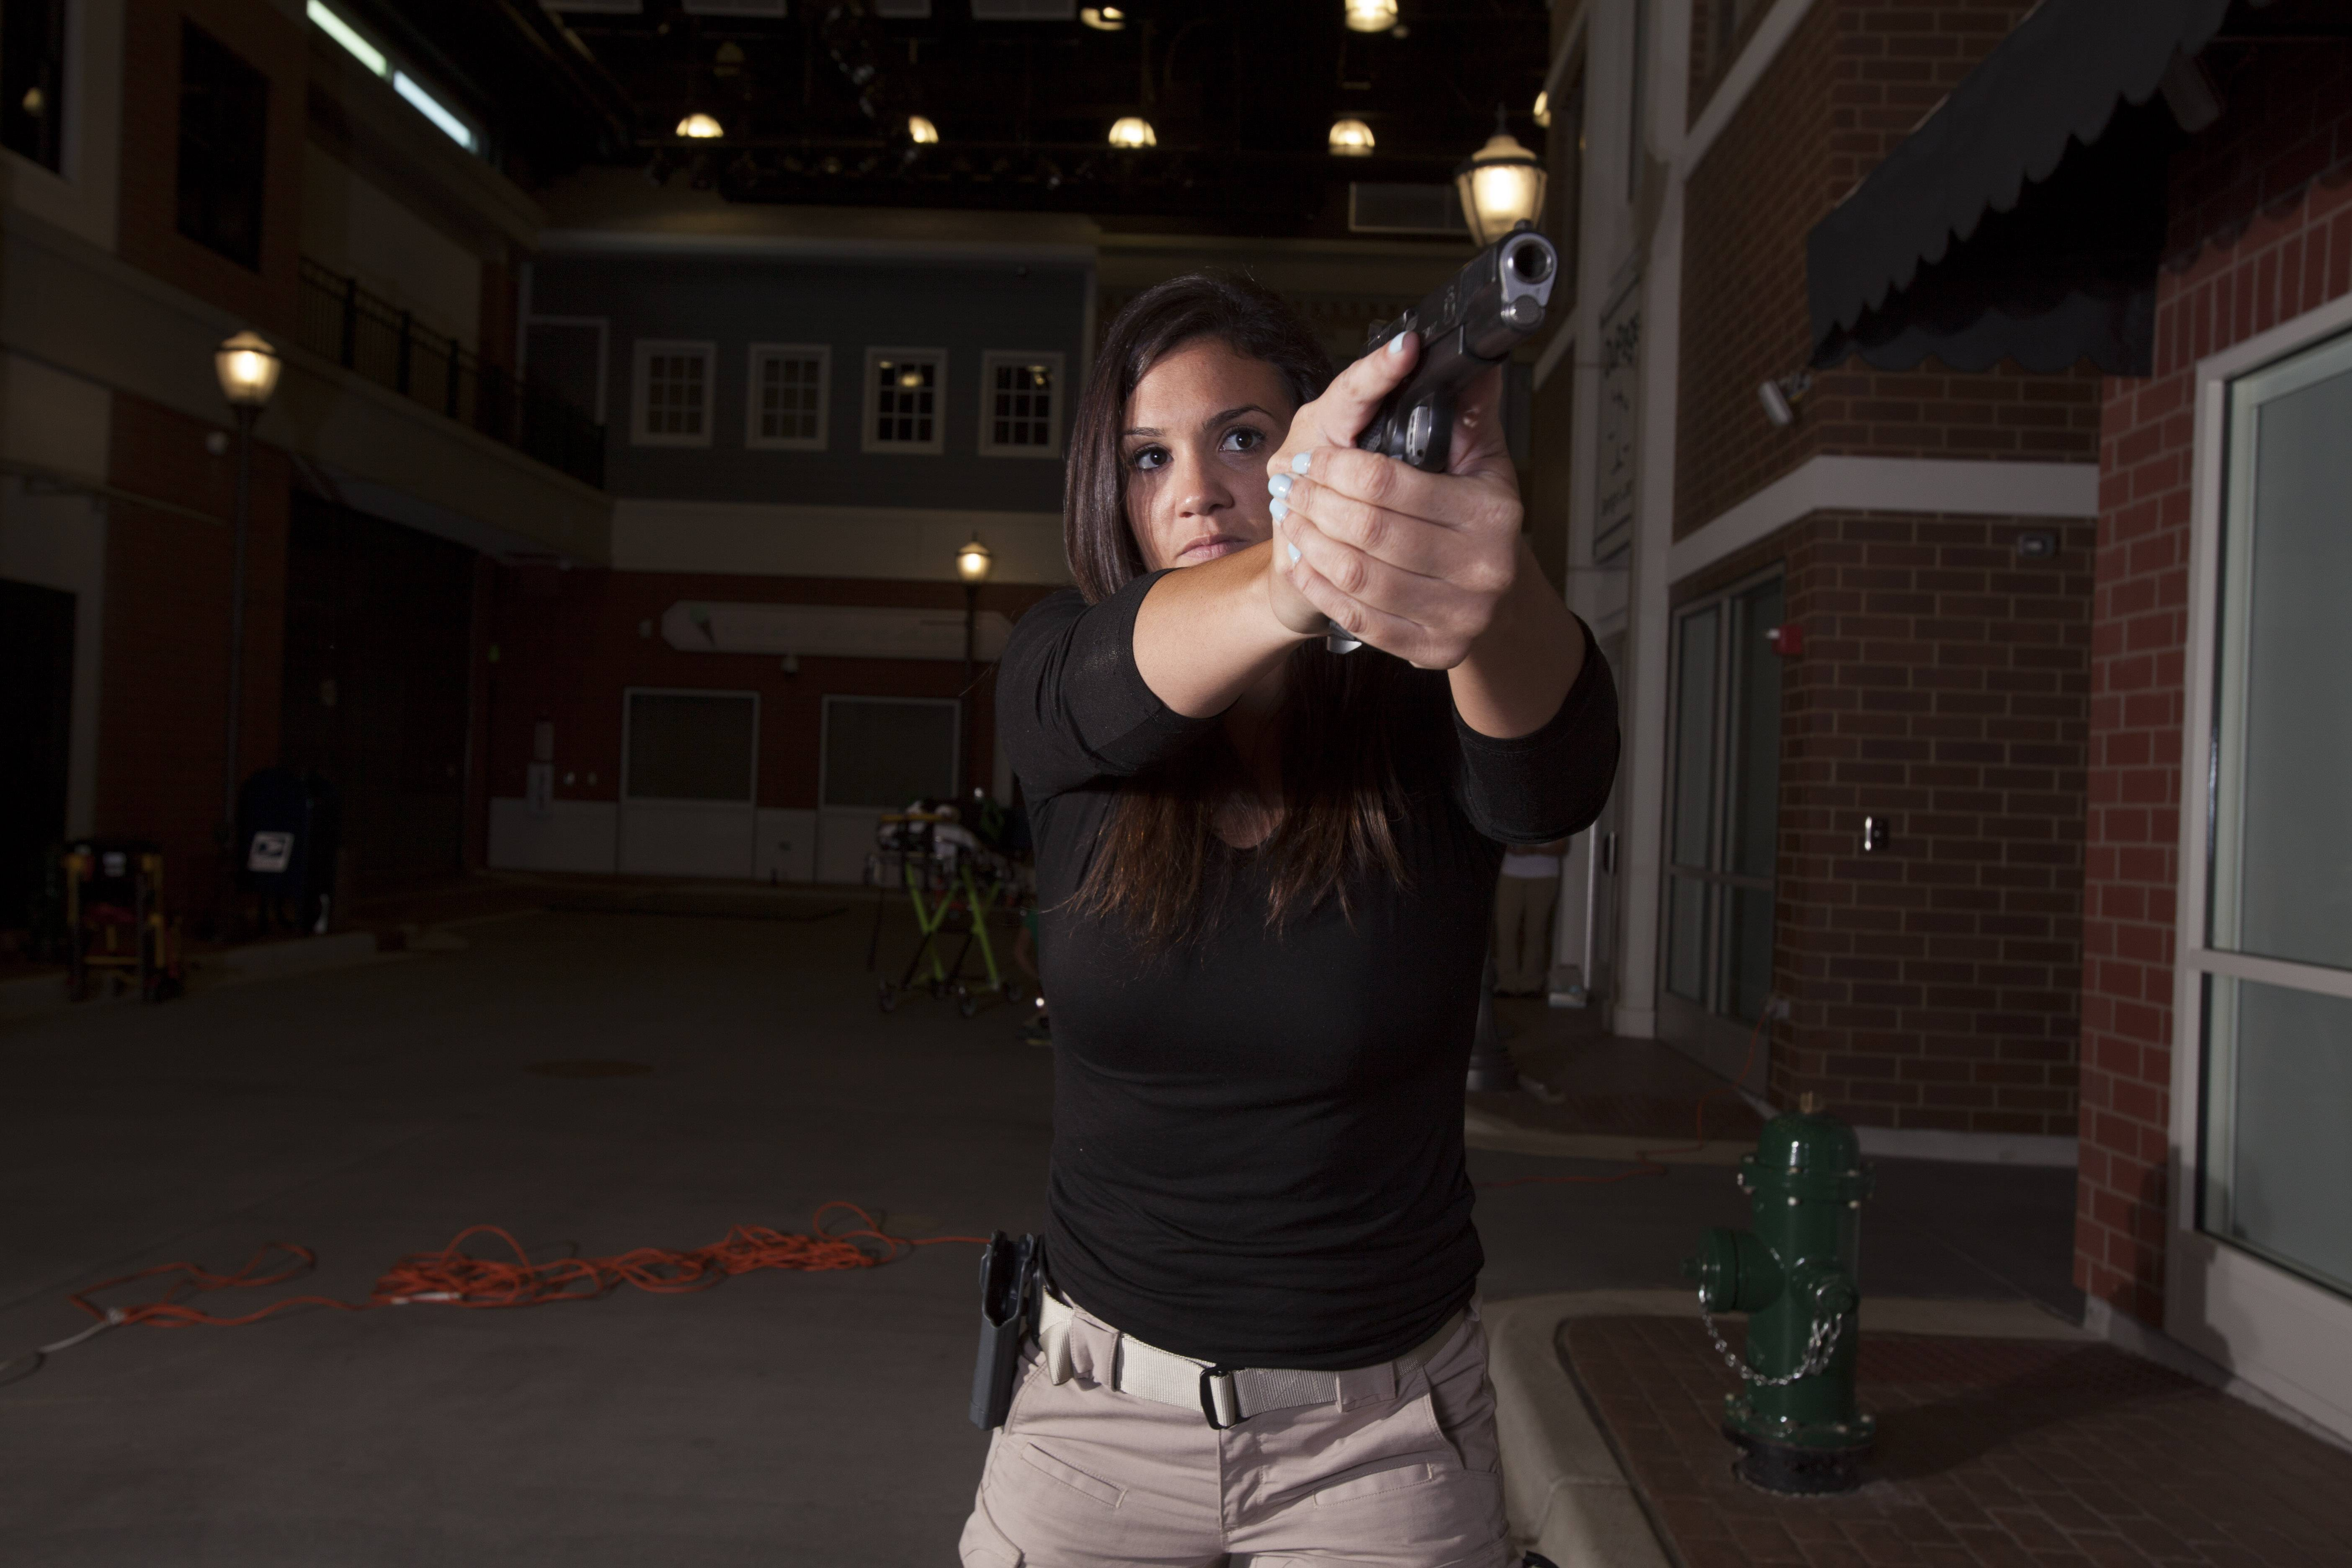 The College of DuPage's Homeland Security Training Institute has added a concealed carry class designed to meet and surpass requirements for obtaining a Concealed Carry License.